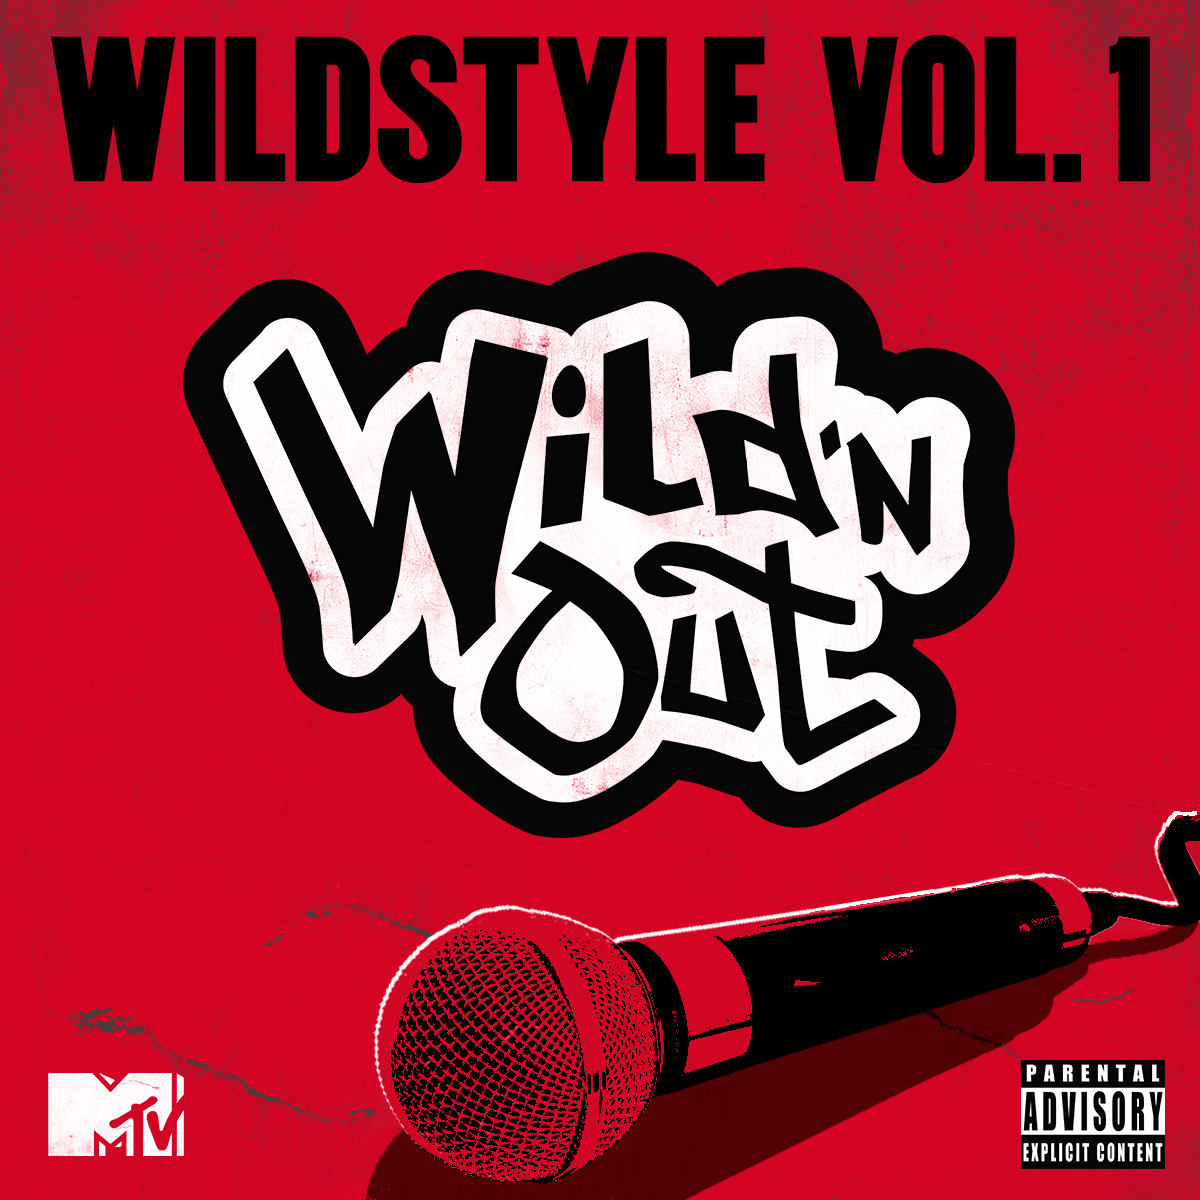 MTV Presents Wild N Out: Wildstyle Vol. 1 Archives.